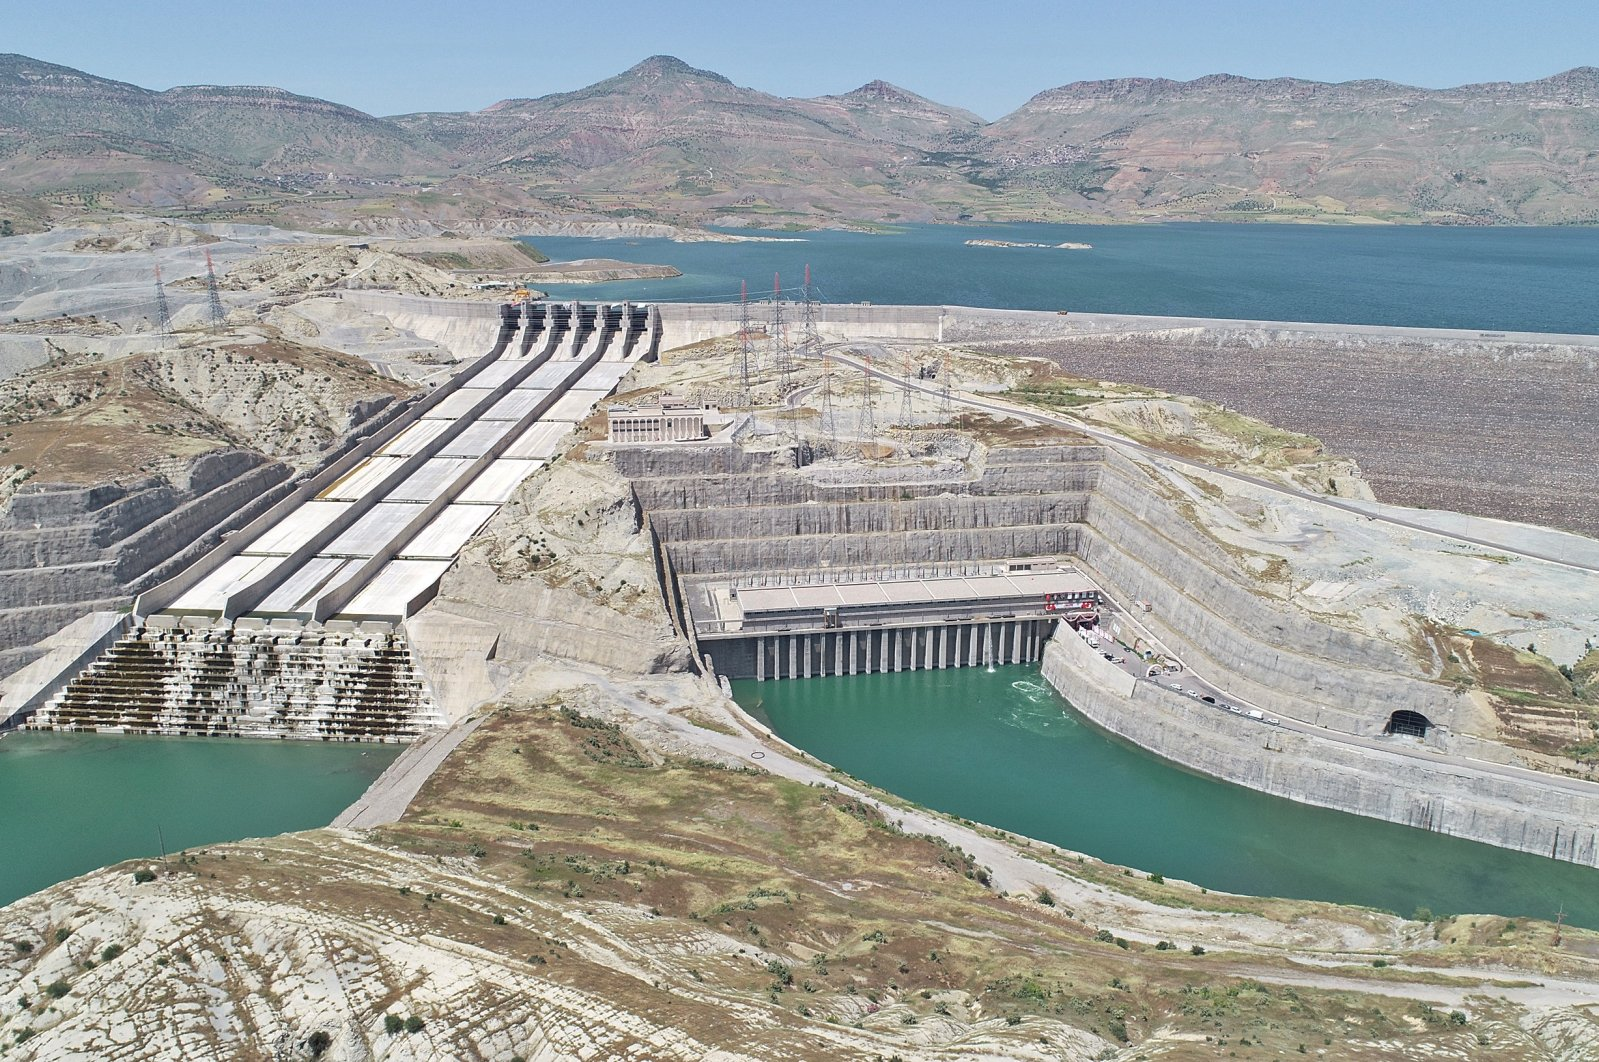 Turkey's Ilısu Dam on the Tigris River that has recently started partially operating. (DHA Photo)